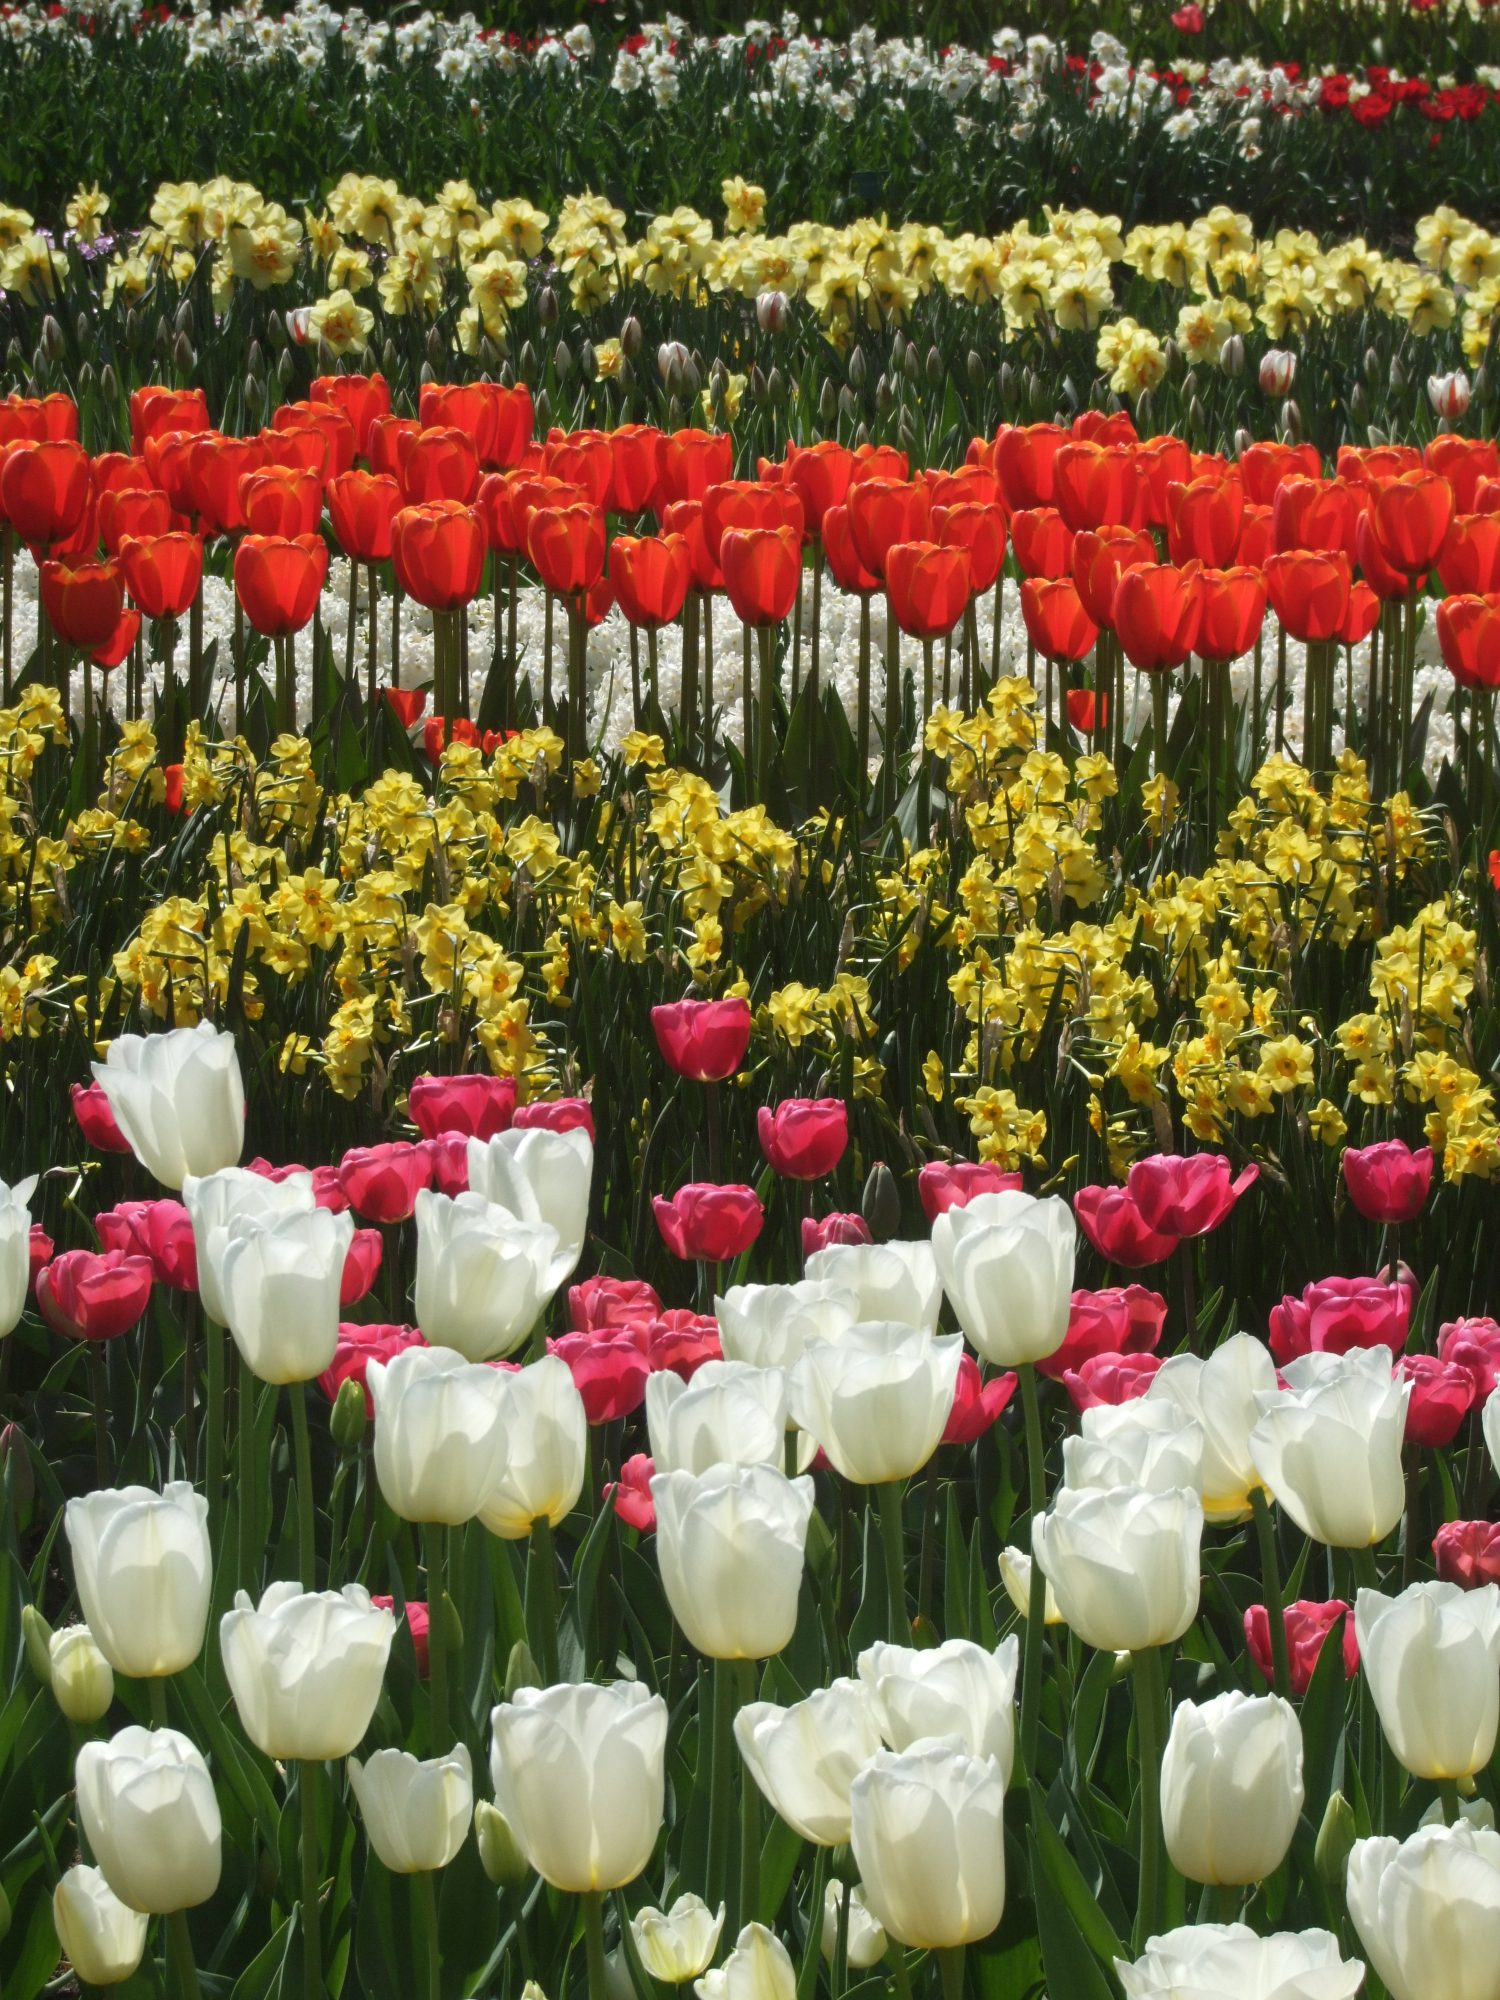 Colorful bulb gardens at Keukenhof, in the Netherlands